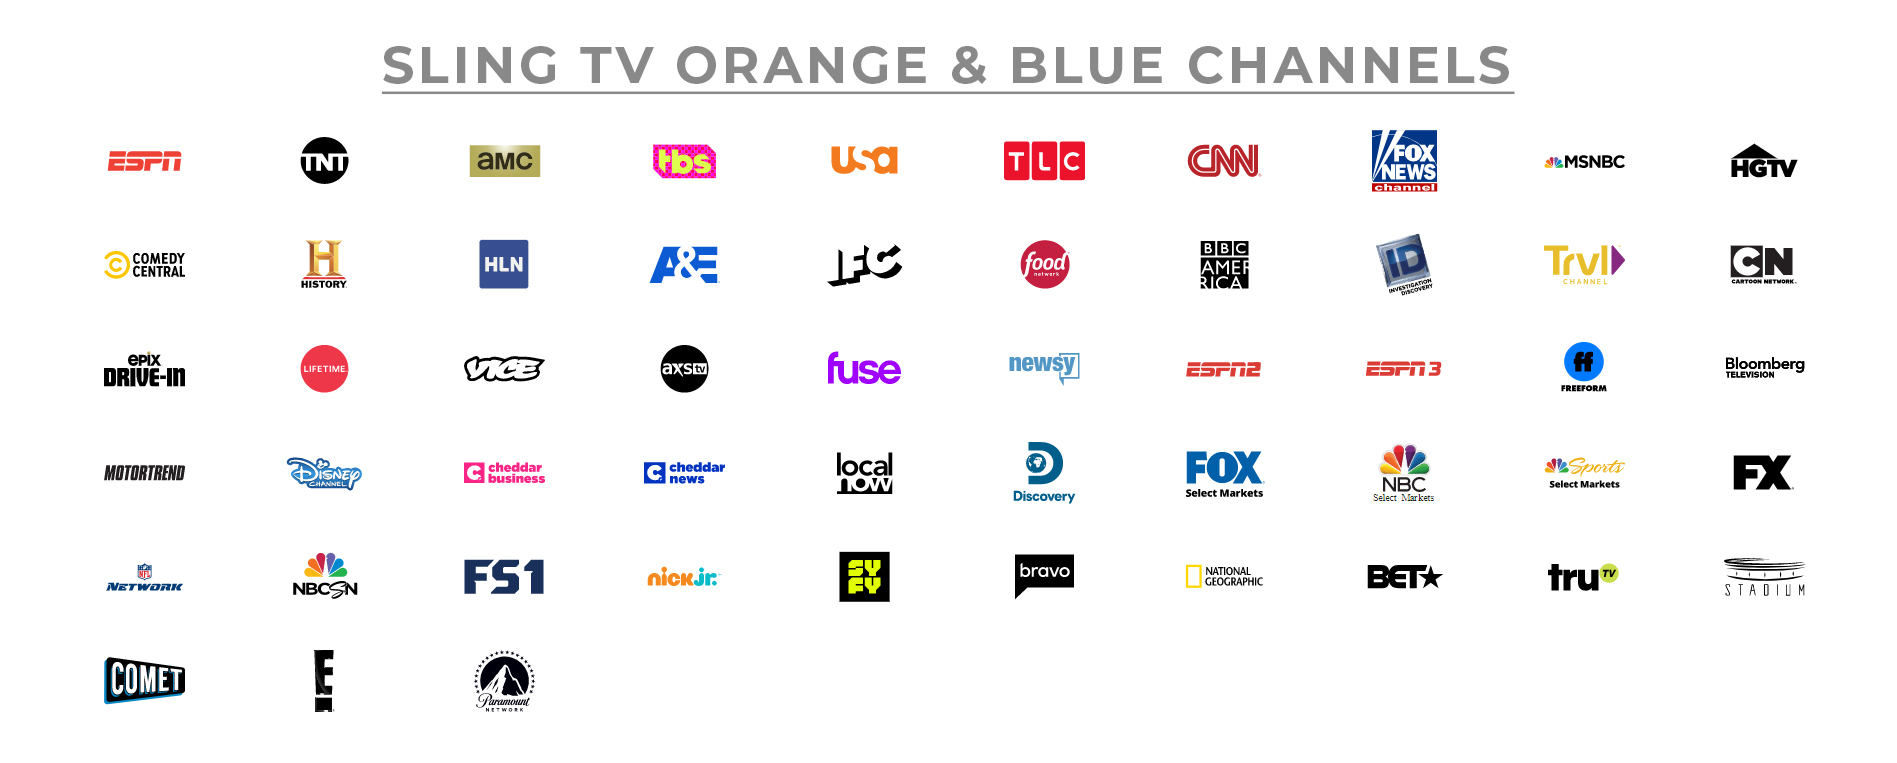 Sling TV Blue Plan Price and Channels